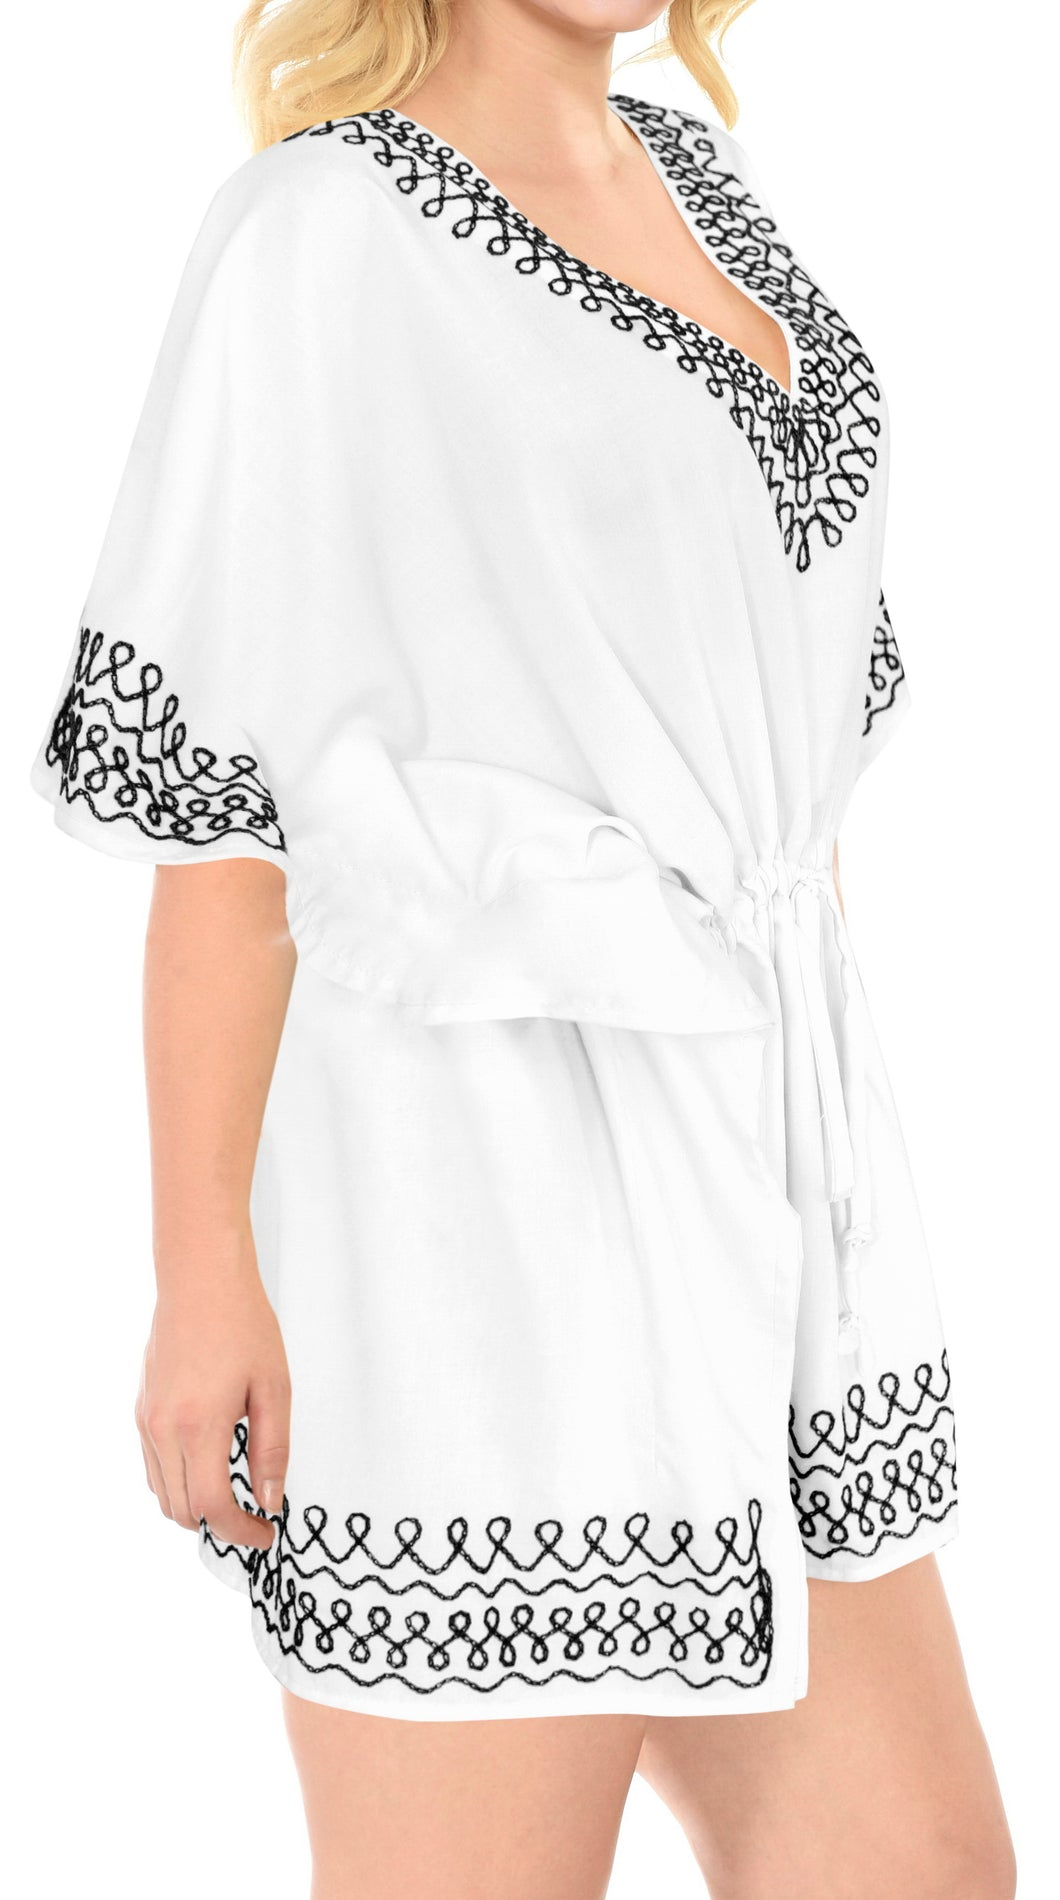 la-leela-bikini-swim-beach-wear-swimsuit-cover-ups-women-caftan-dress-solid-OSFM 16-28W [XL- 4X]-Ghost White_B619